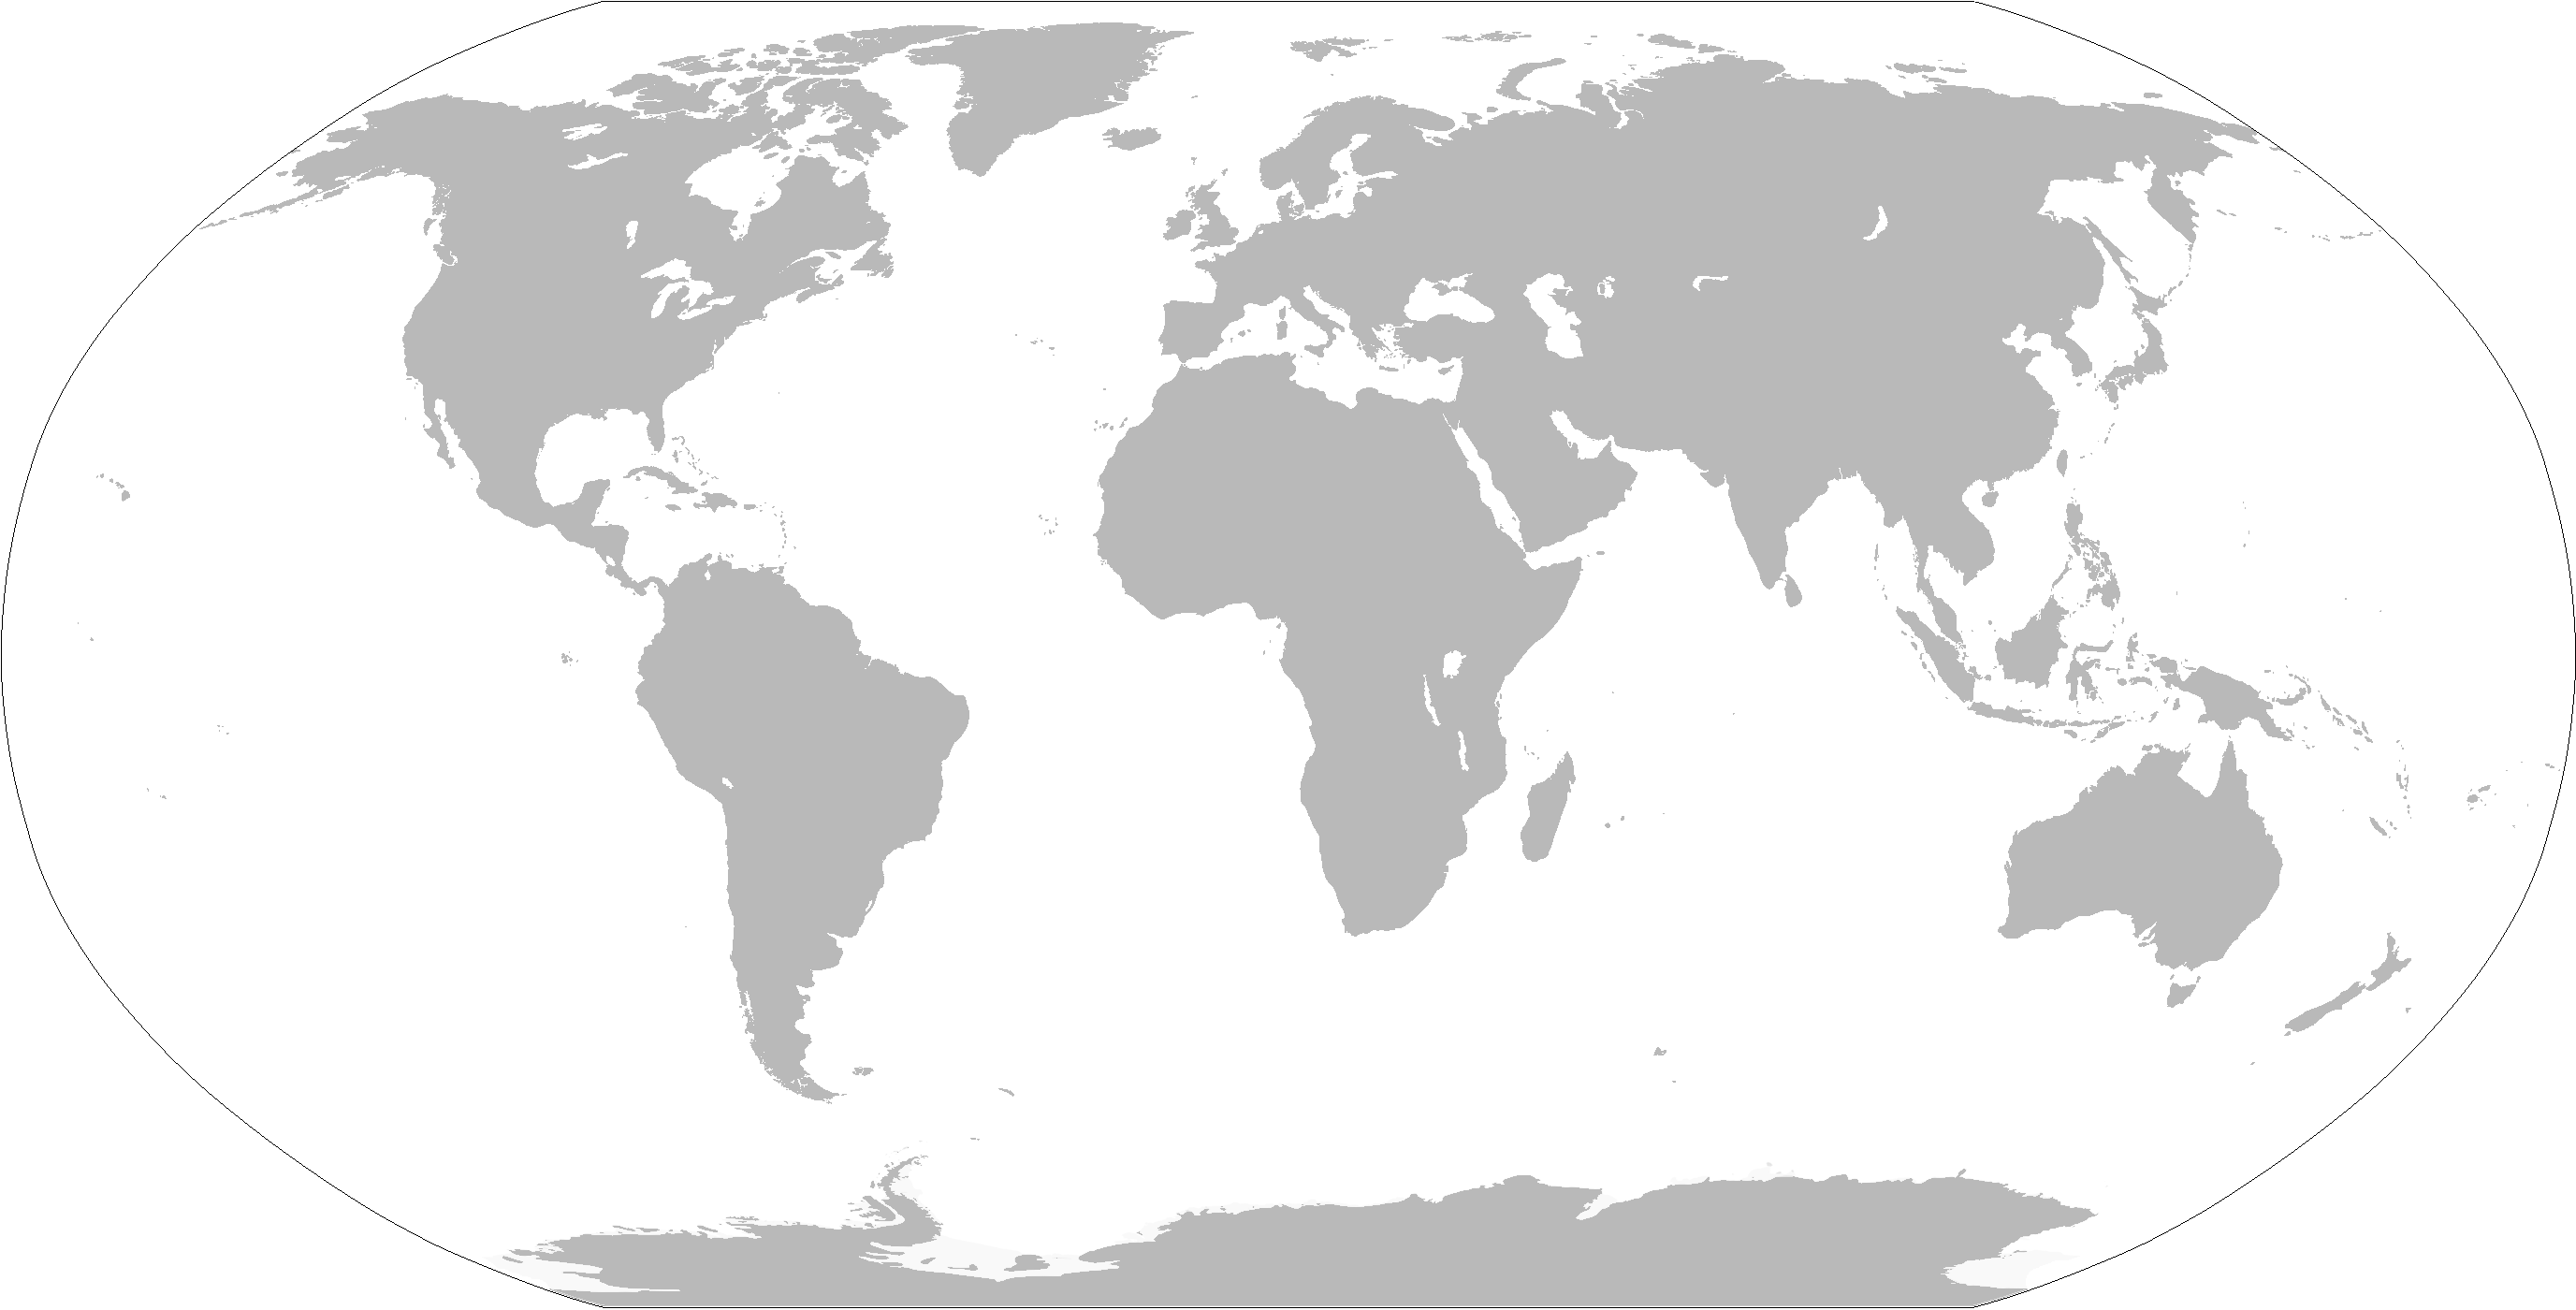 File BlankMap World large noborders Wikimedia mons